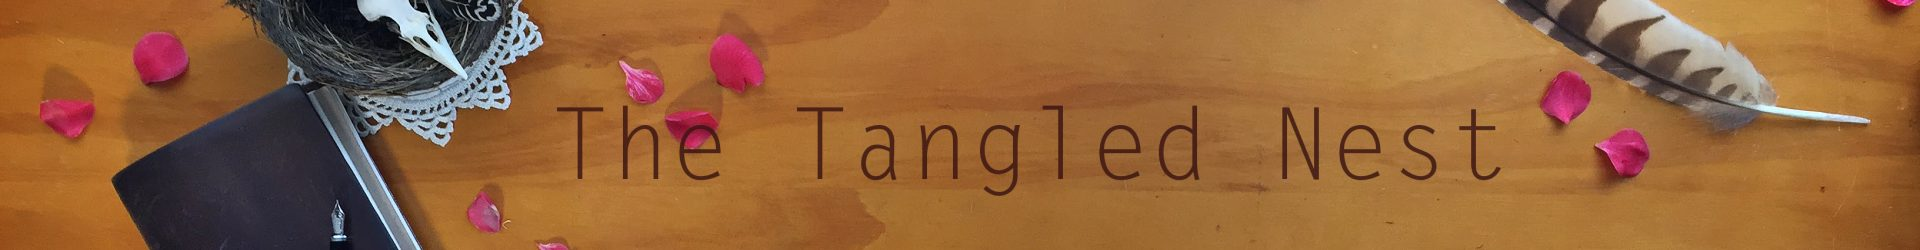 Loading The Village Bicycle Project's 100th Container for Africa